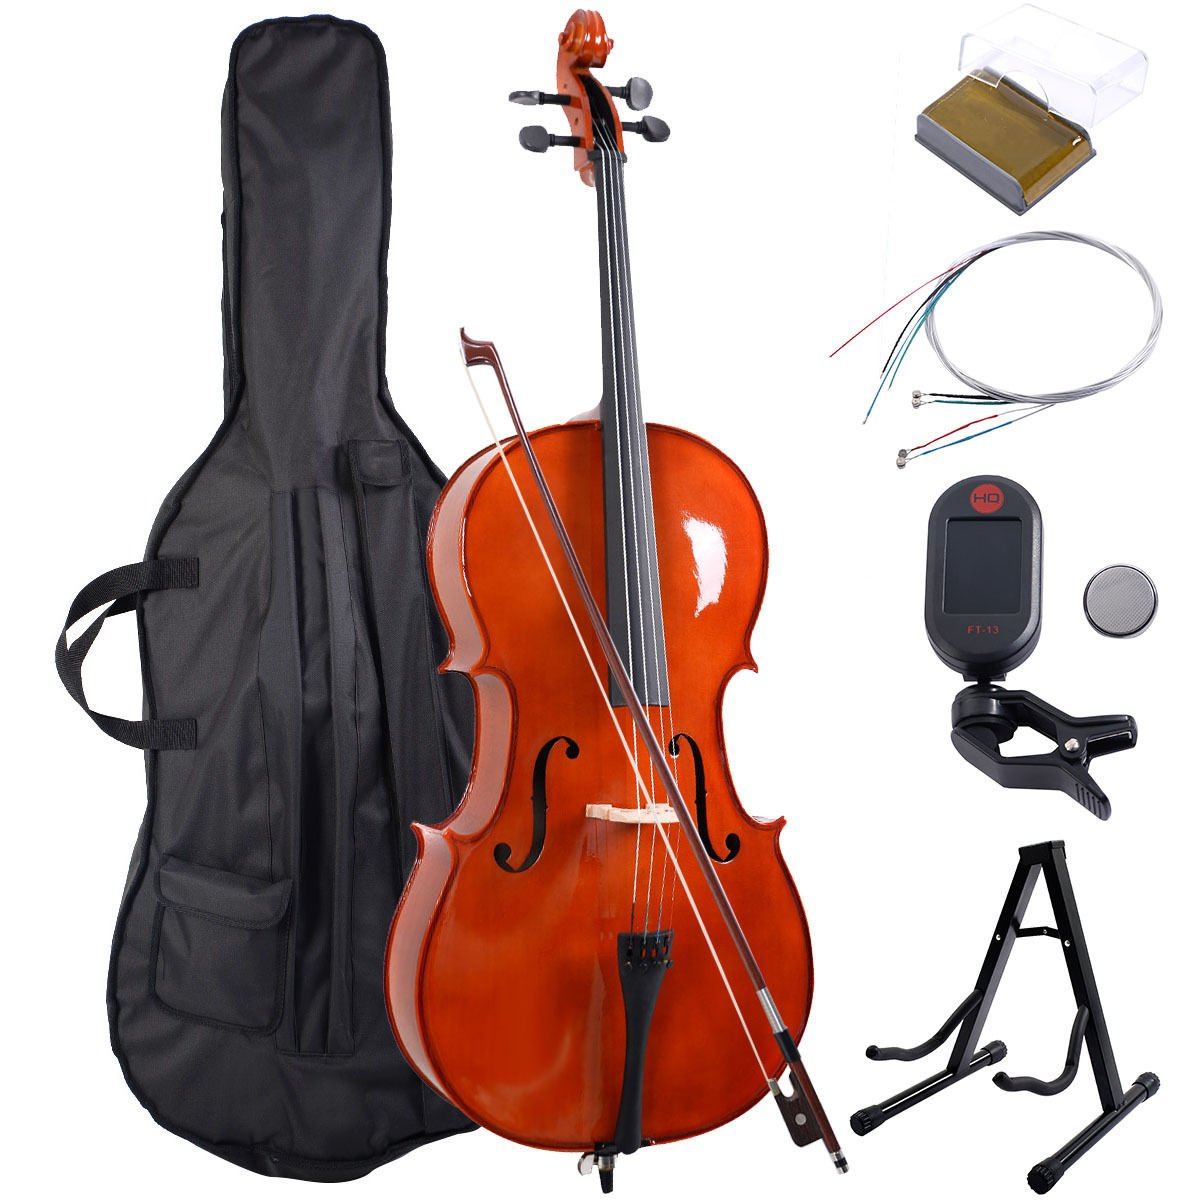 Goplus Wood 4/4 Full Size Acoustic Cello with Soft Case, Stand, Bow, Rosin, Bridge and Extra Set of Strings